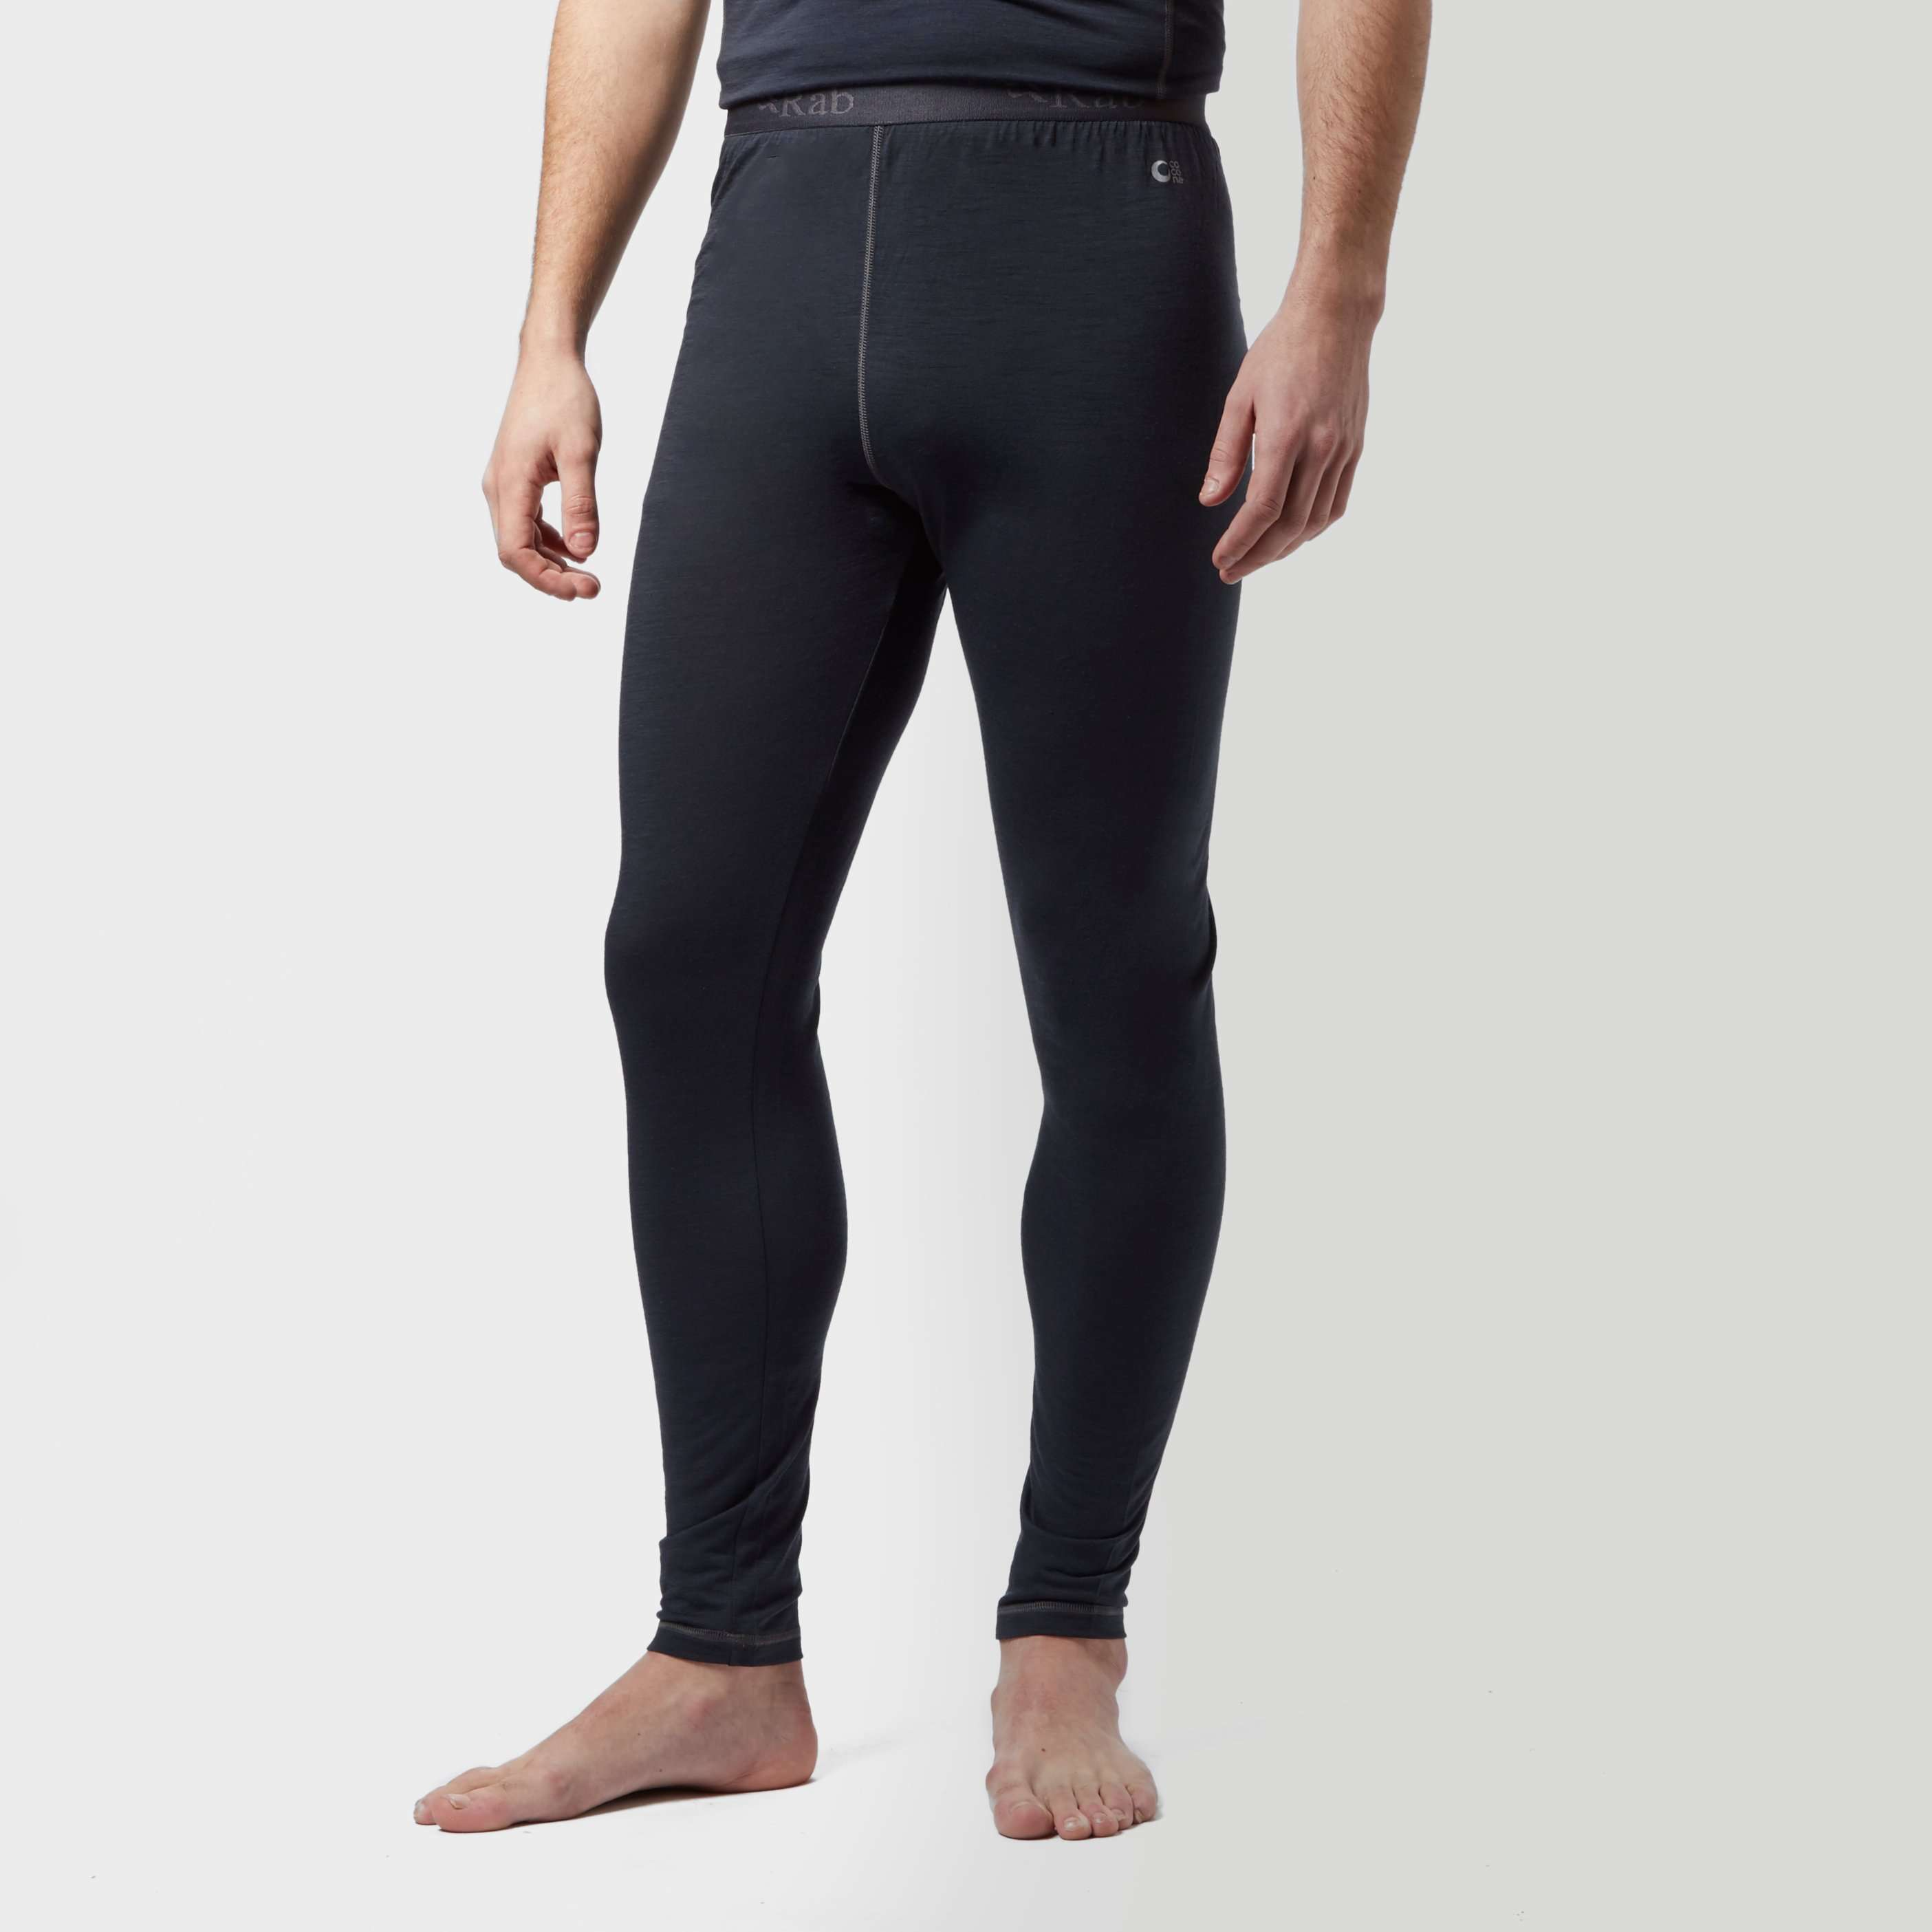 RAB Men's Meco 120™ Baselayer Pants